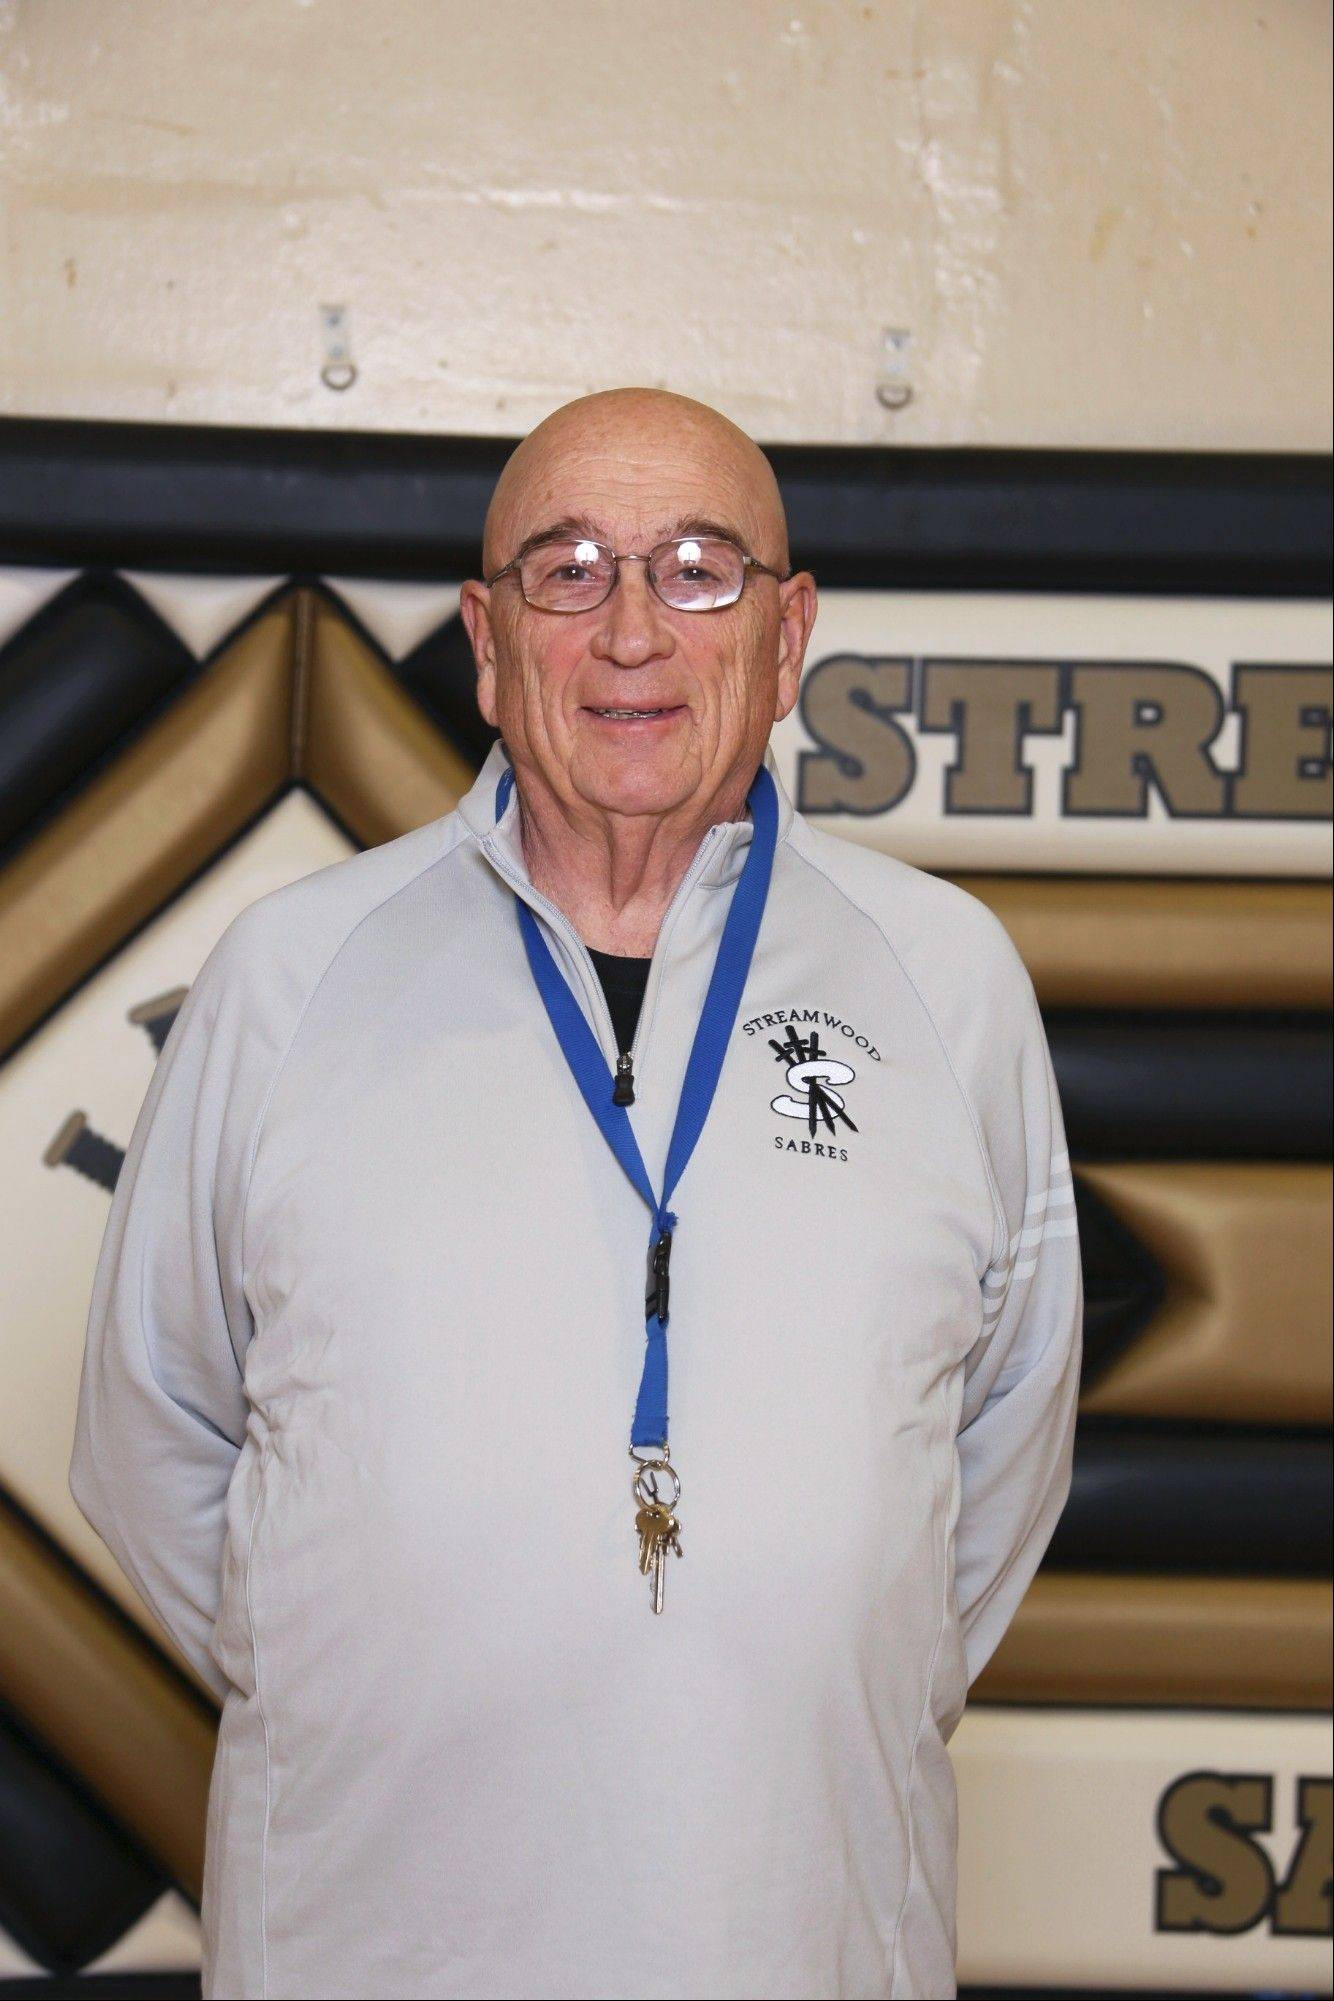 Streamwood's Prose takes his place in IBCA Hall